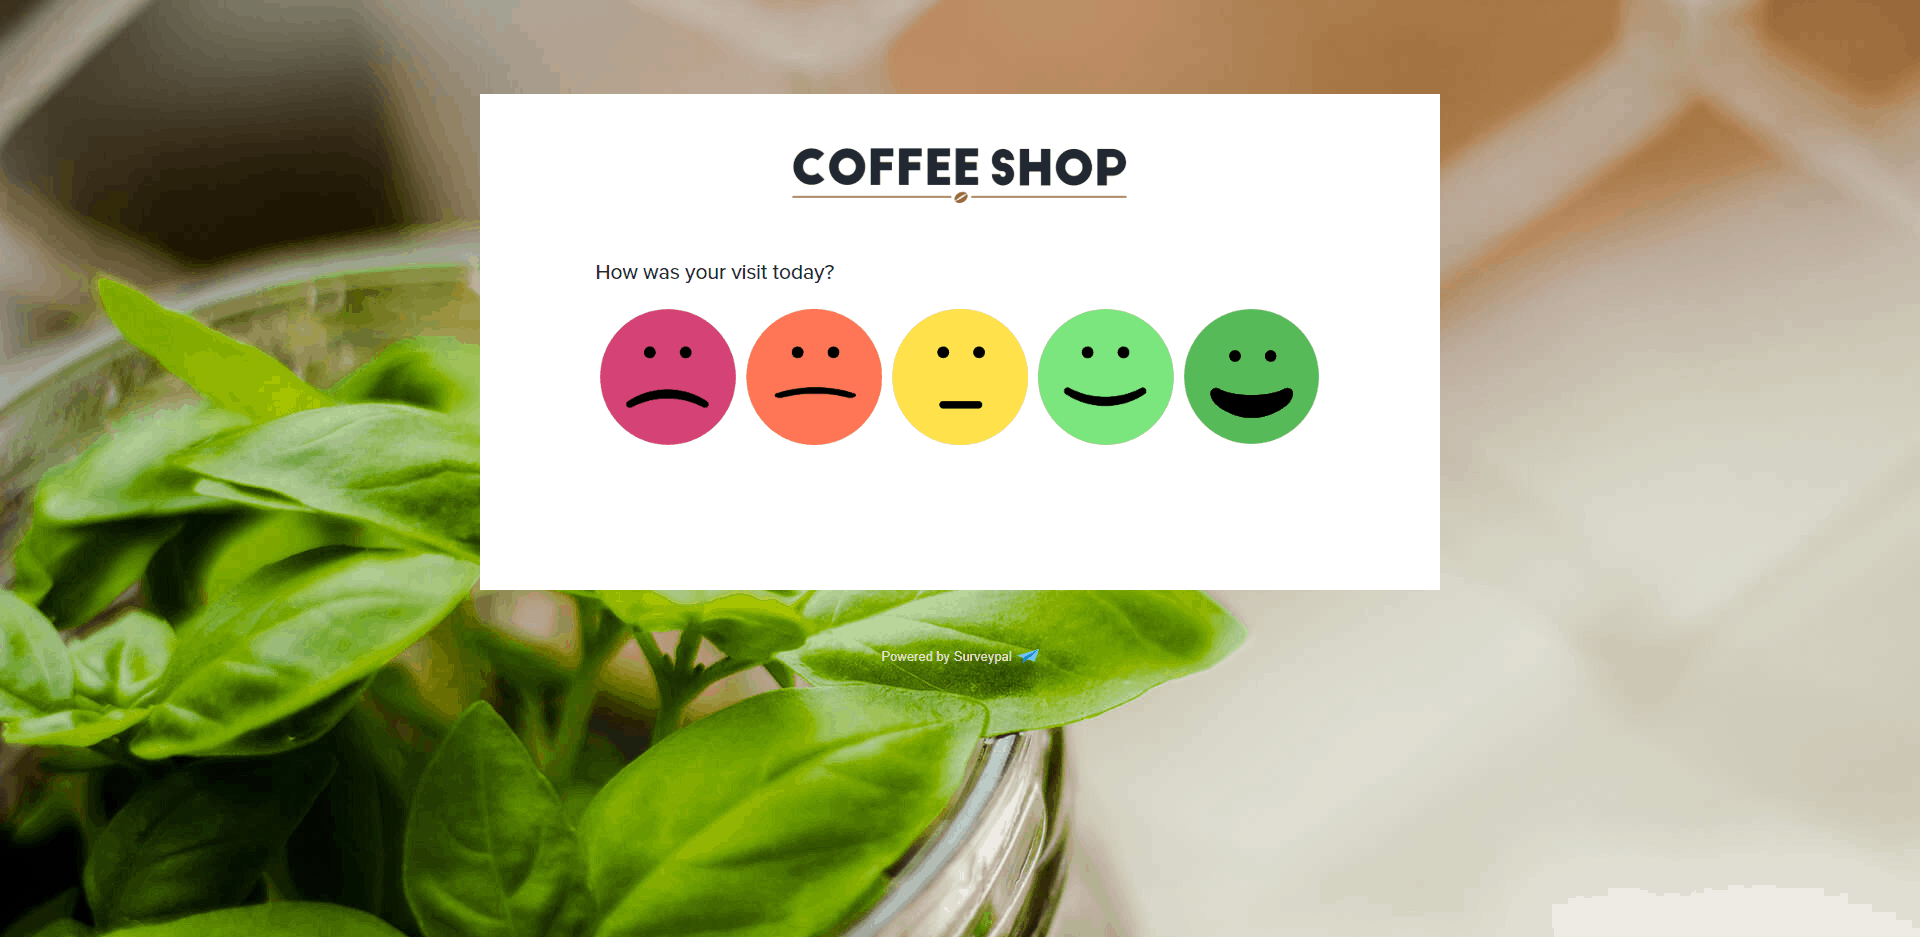 coffee shop experience survey